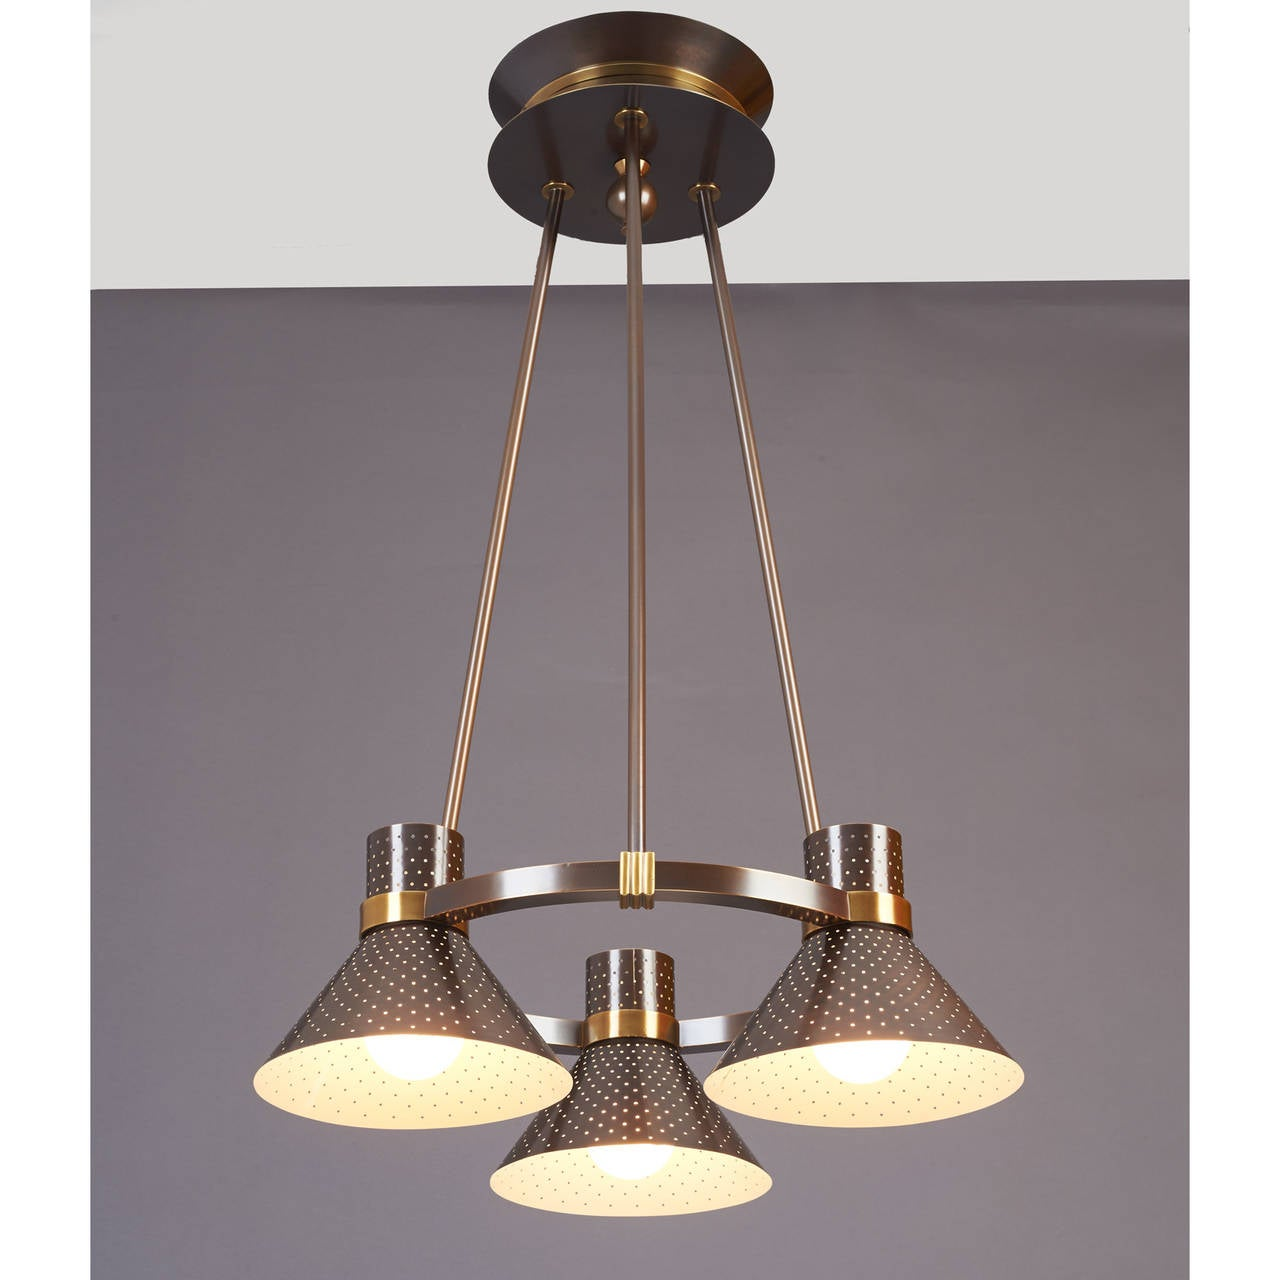 Mid-20th Century Modernist Bronze Chandelier with Perforated Shades, France, 1950s For Sale